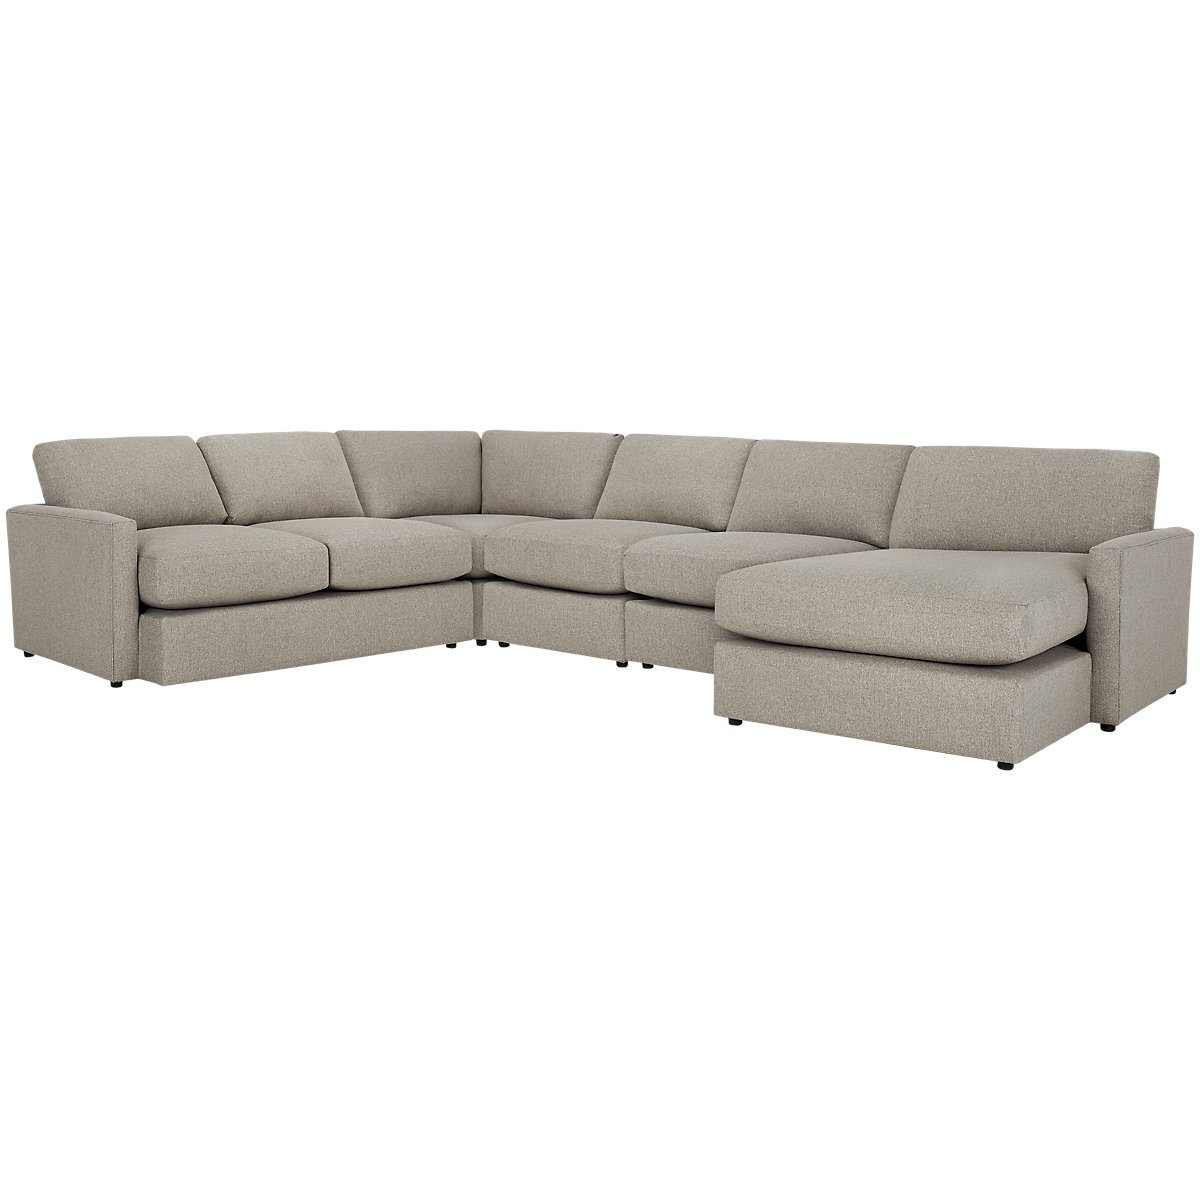 Noah Khaki Fabric Large Right Chaise Sectional